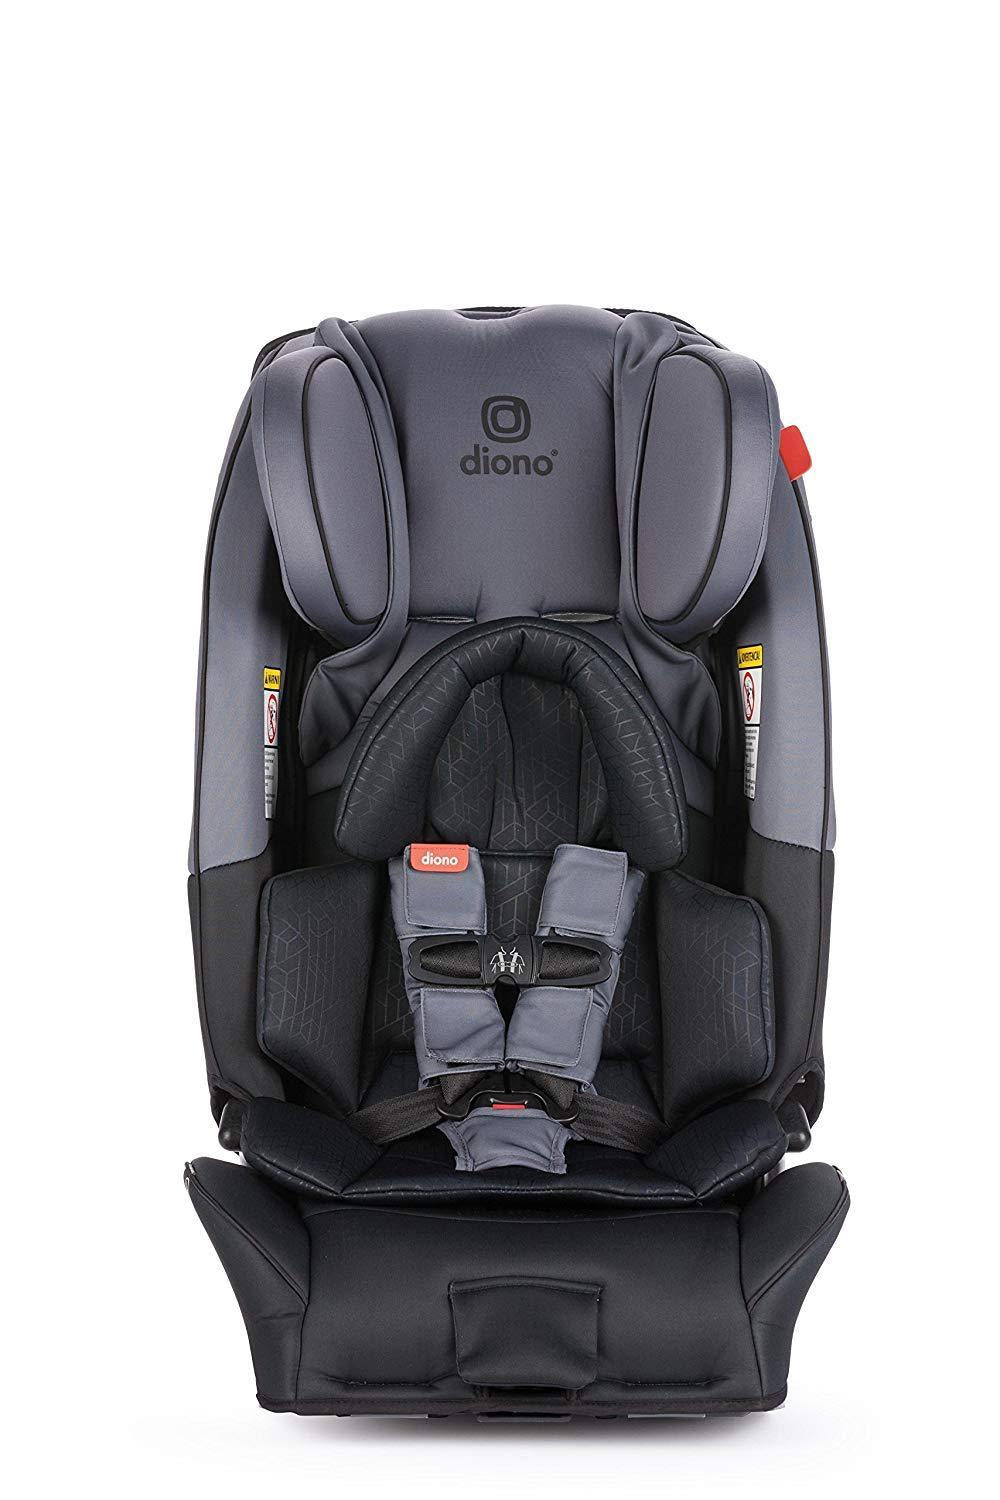 Diono Radian 3 RXT All-in-One Convertible Car Seat - Grey Dark